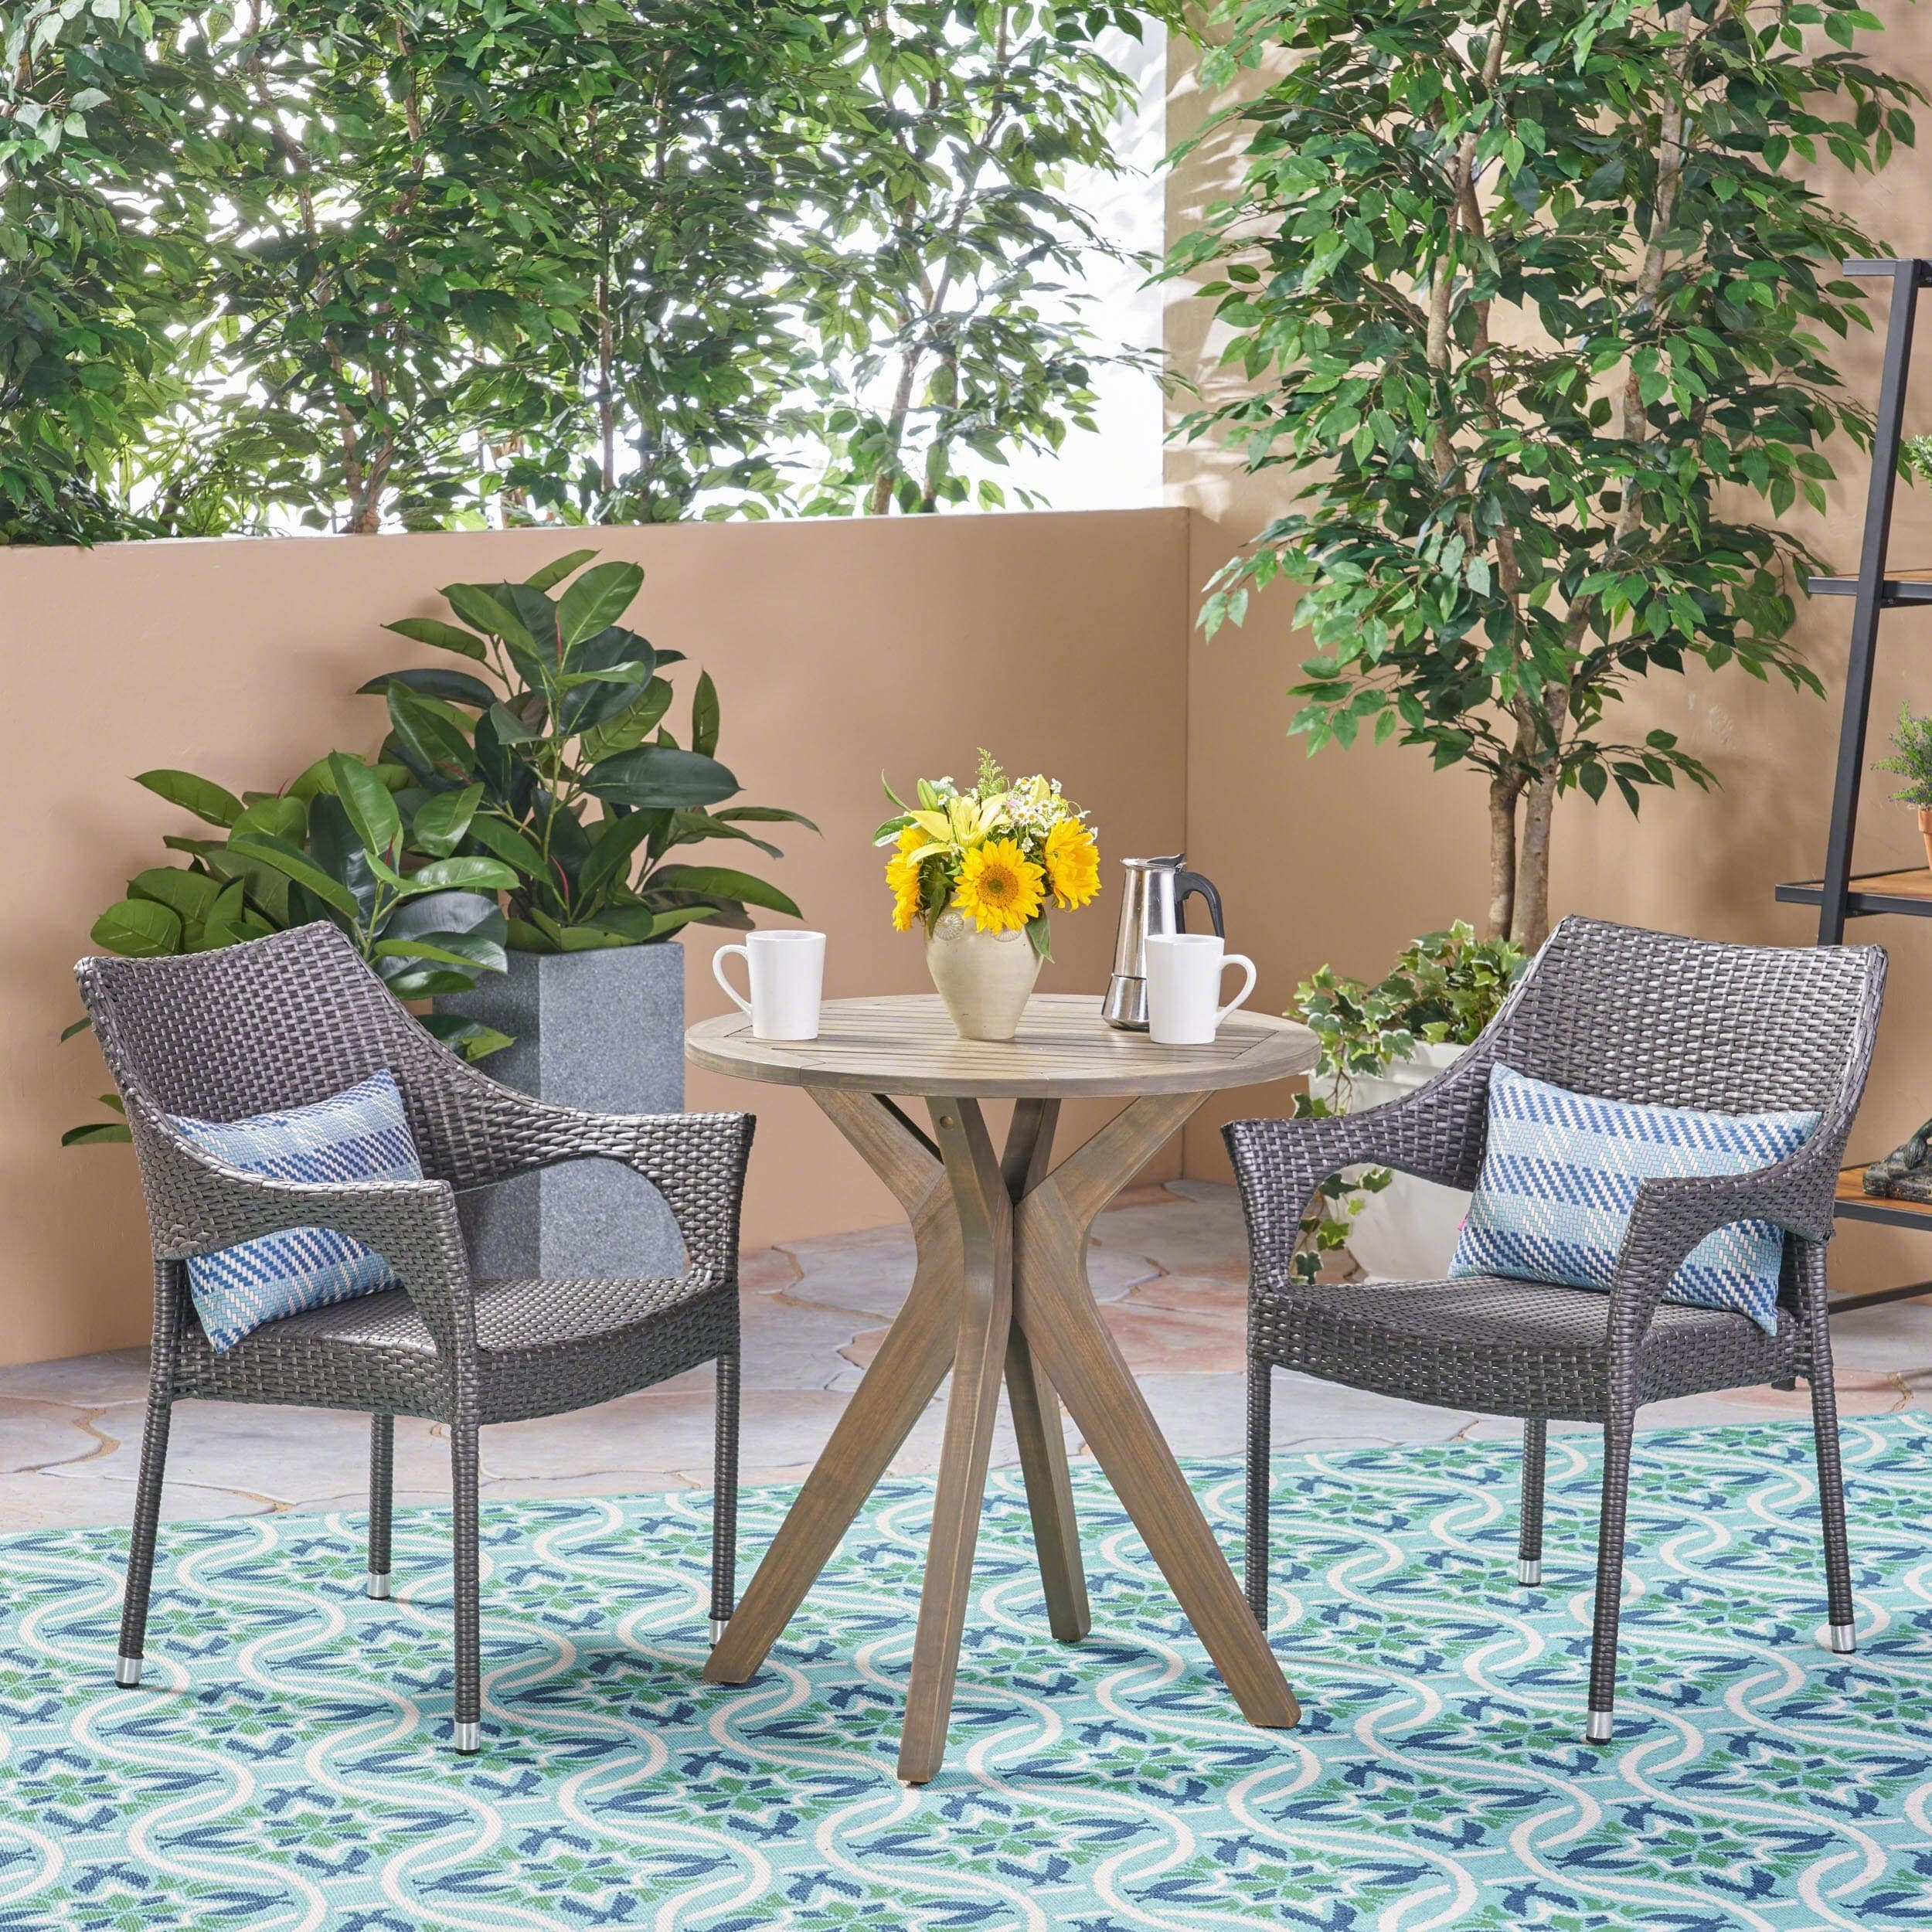 Christopher Knight Home Bryant Outdoor 3 Piece Acacia Wood and Wicker Bistro Set by